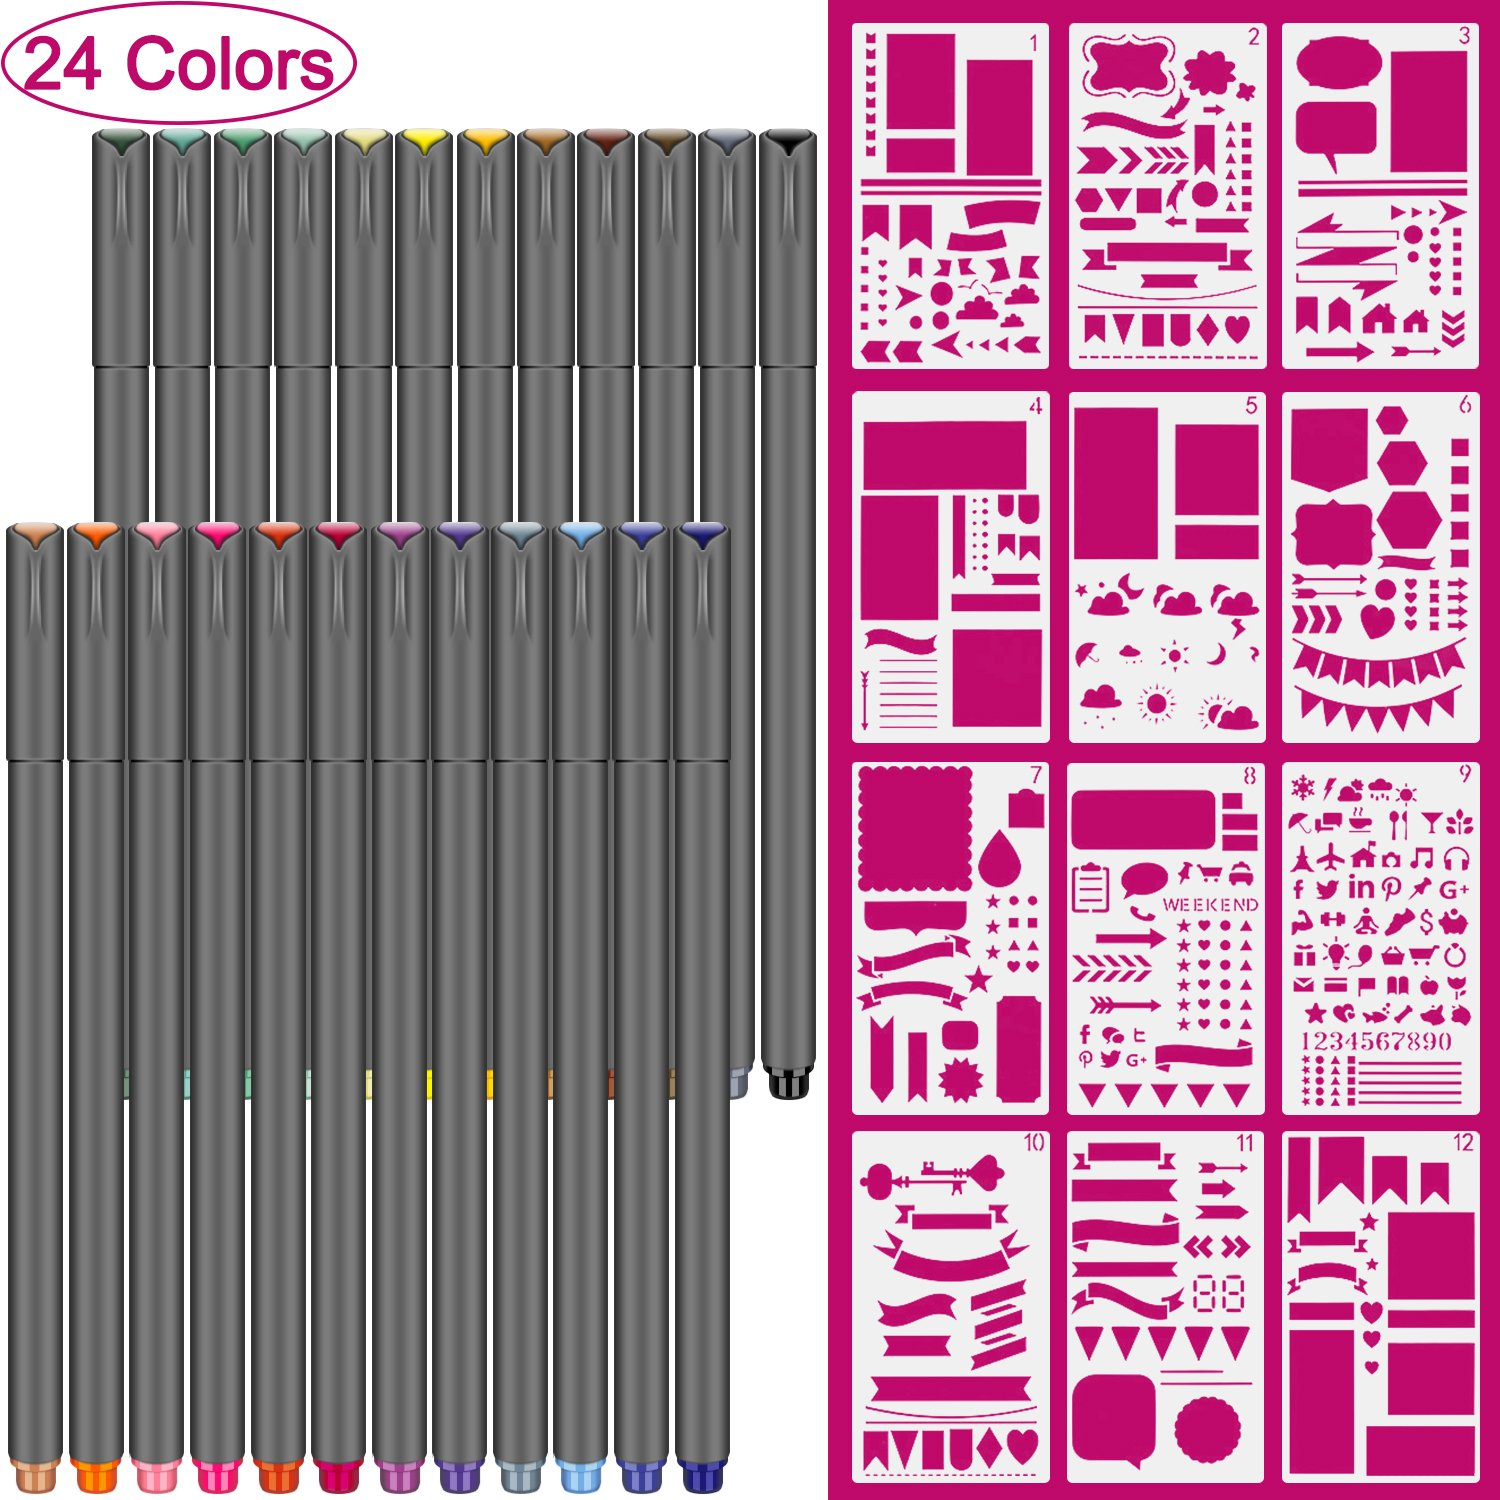 Bullet Journal Supplies, 24 Color fineliner pens and 12 Pieces Notebook Diary Scrapbook Templates Plastic Planner Kit